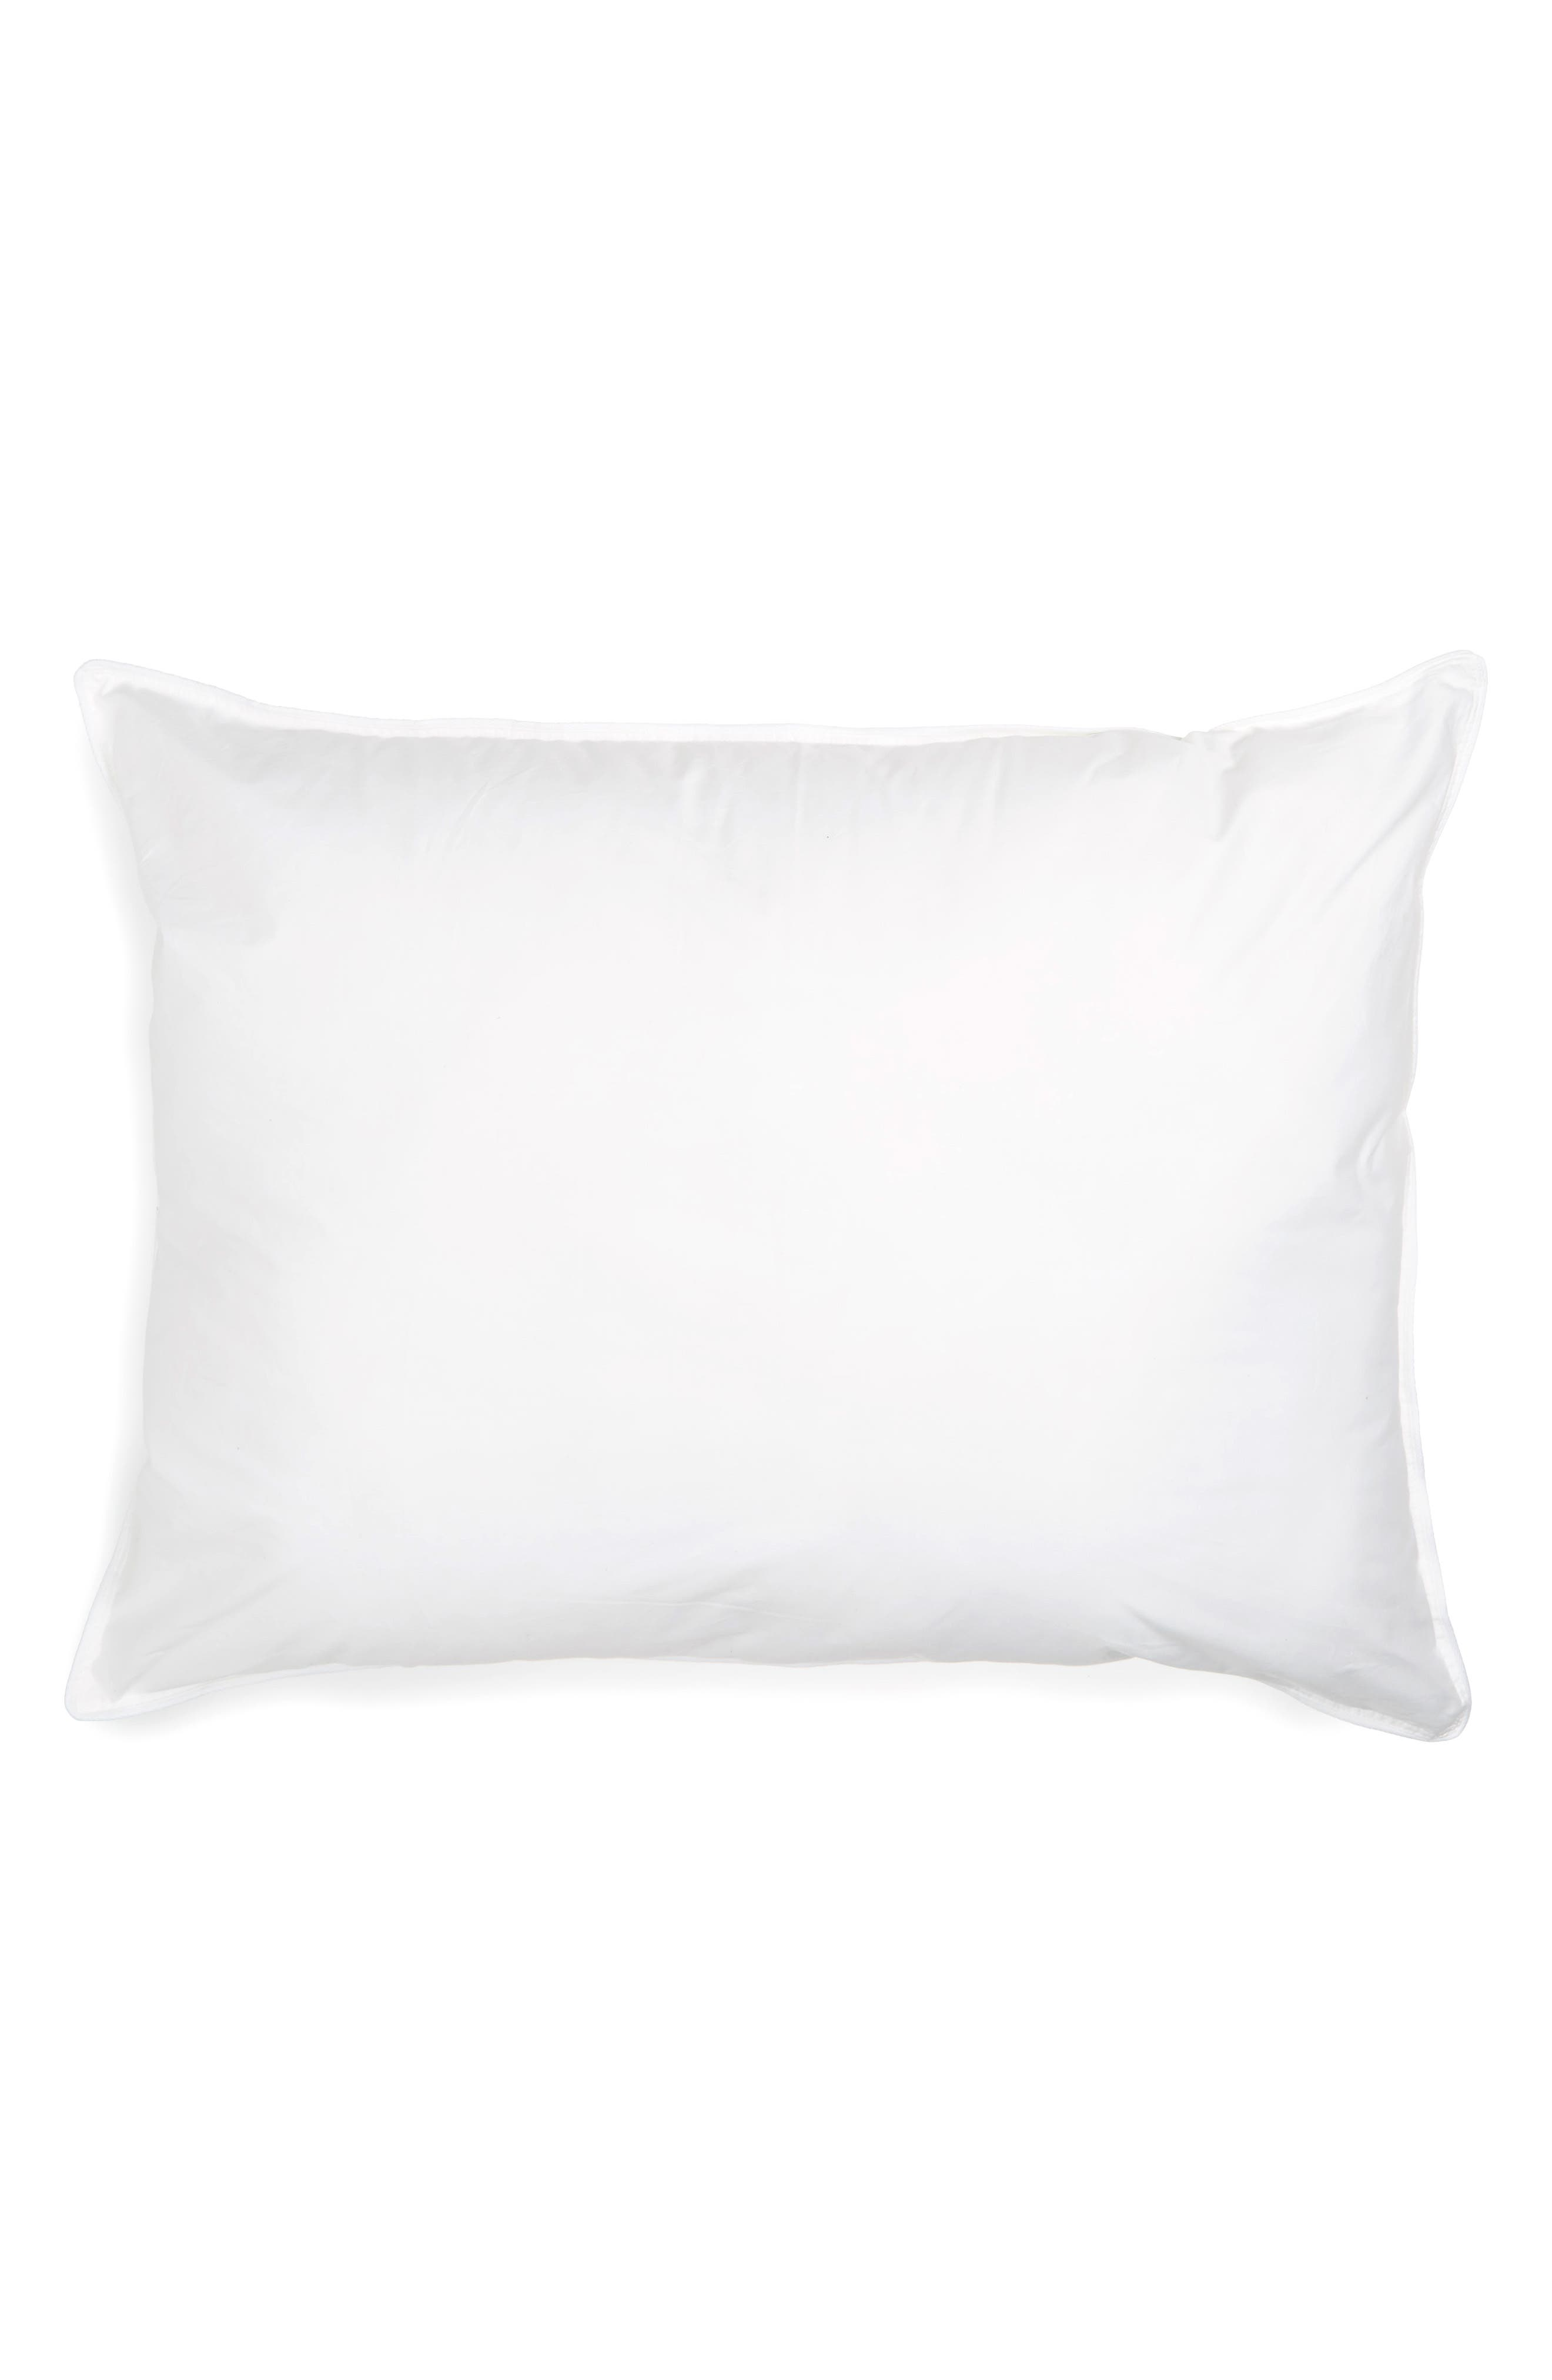 'Home Collection' Hypoallergenic Pillow,                             Alternate thumbnail 2, color,                             WHI